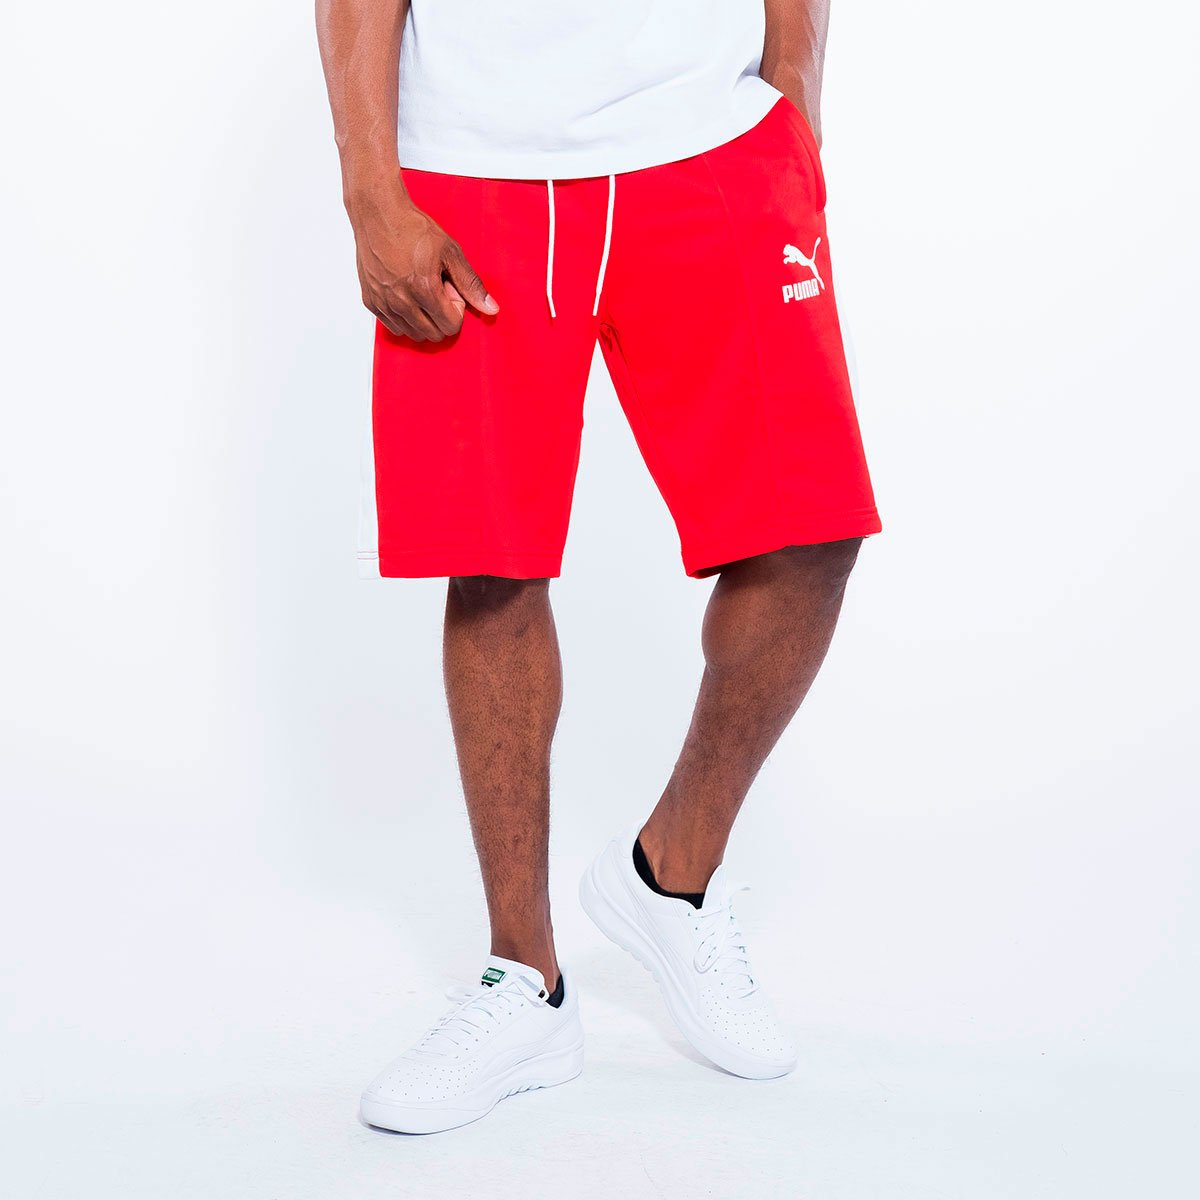 [855026-01] Pintuck Archive T7 Bermuda Short